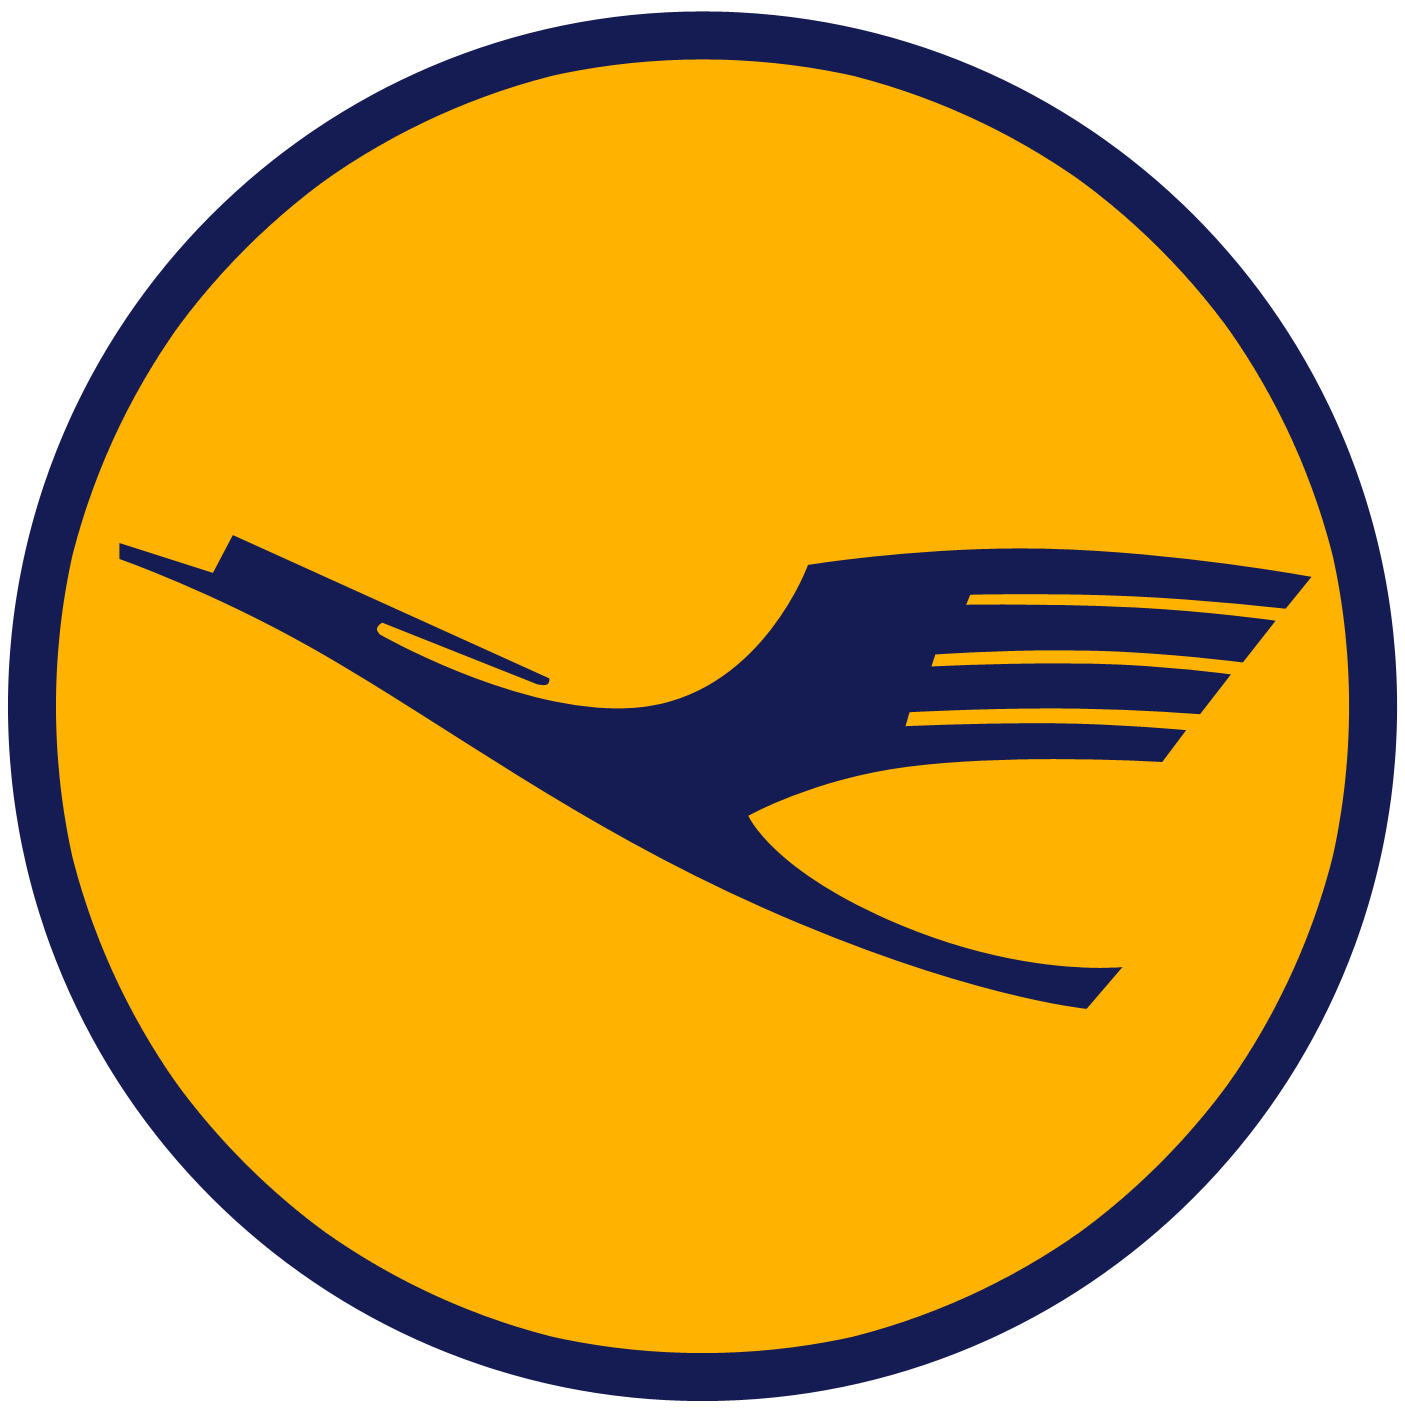 Everything About All Logos: Lufthansa Logo Pictures